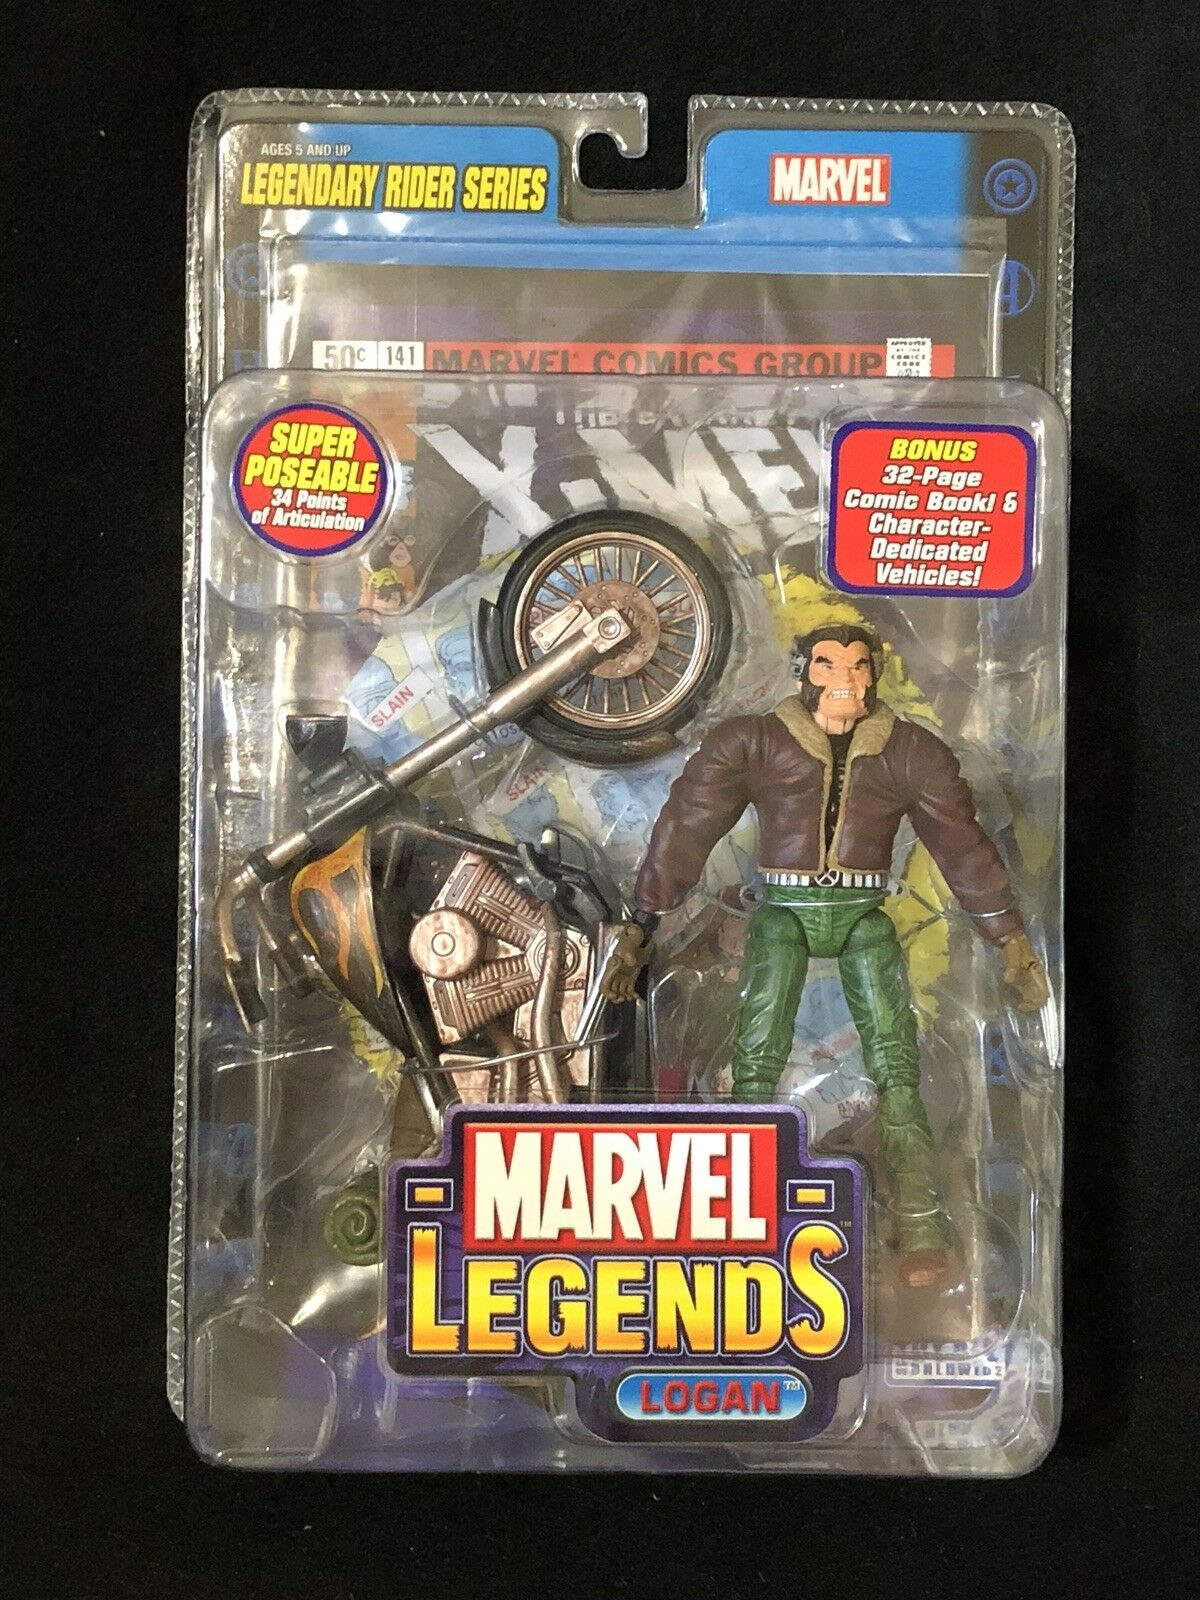 Marvel Legends LOGAN Legendary Rider Series Action Figure ToyBiz 2005 SEALED